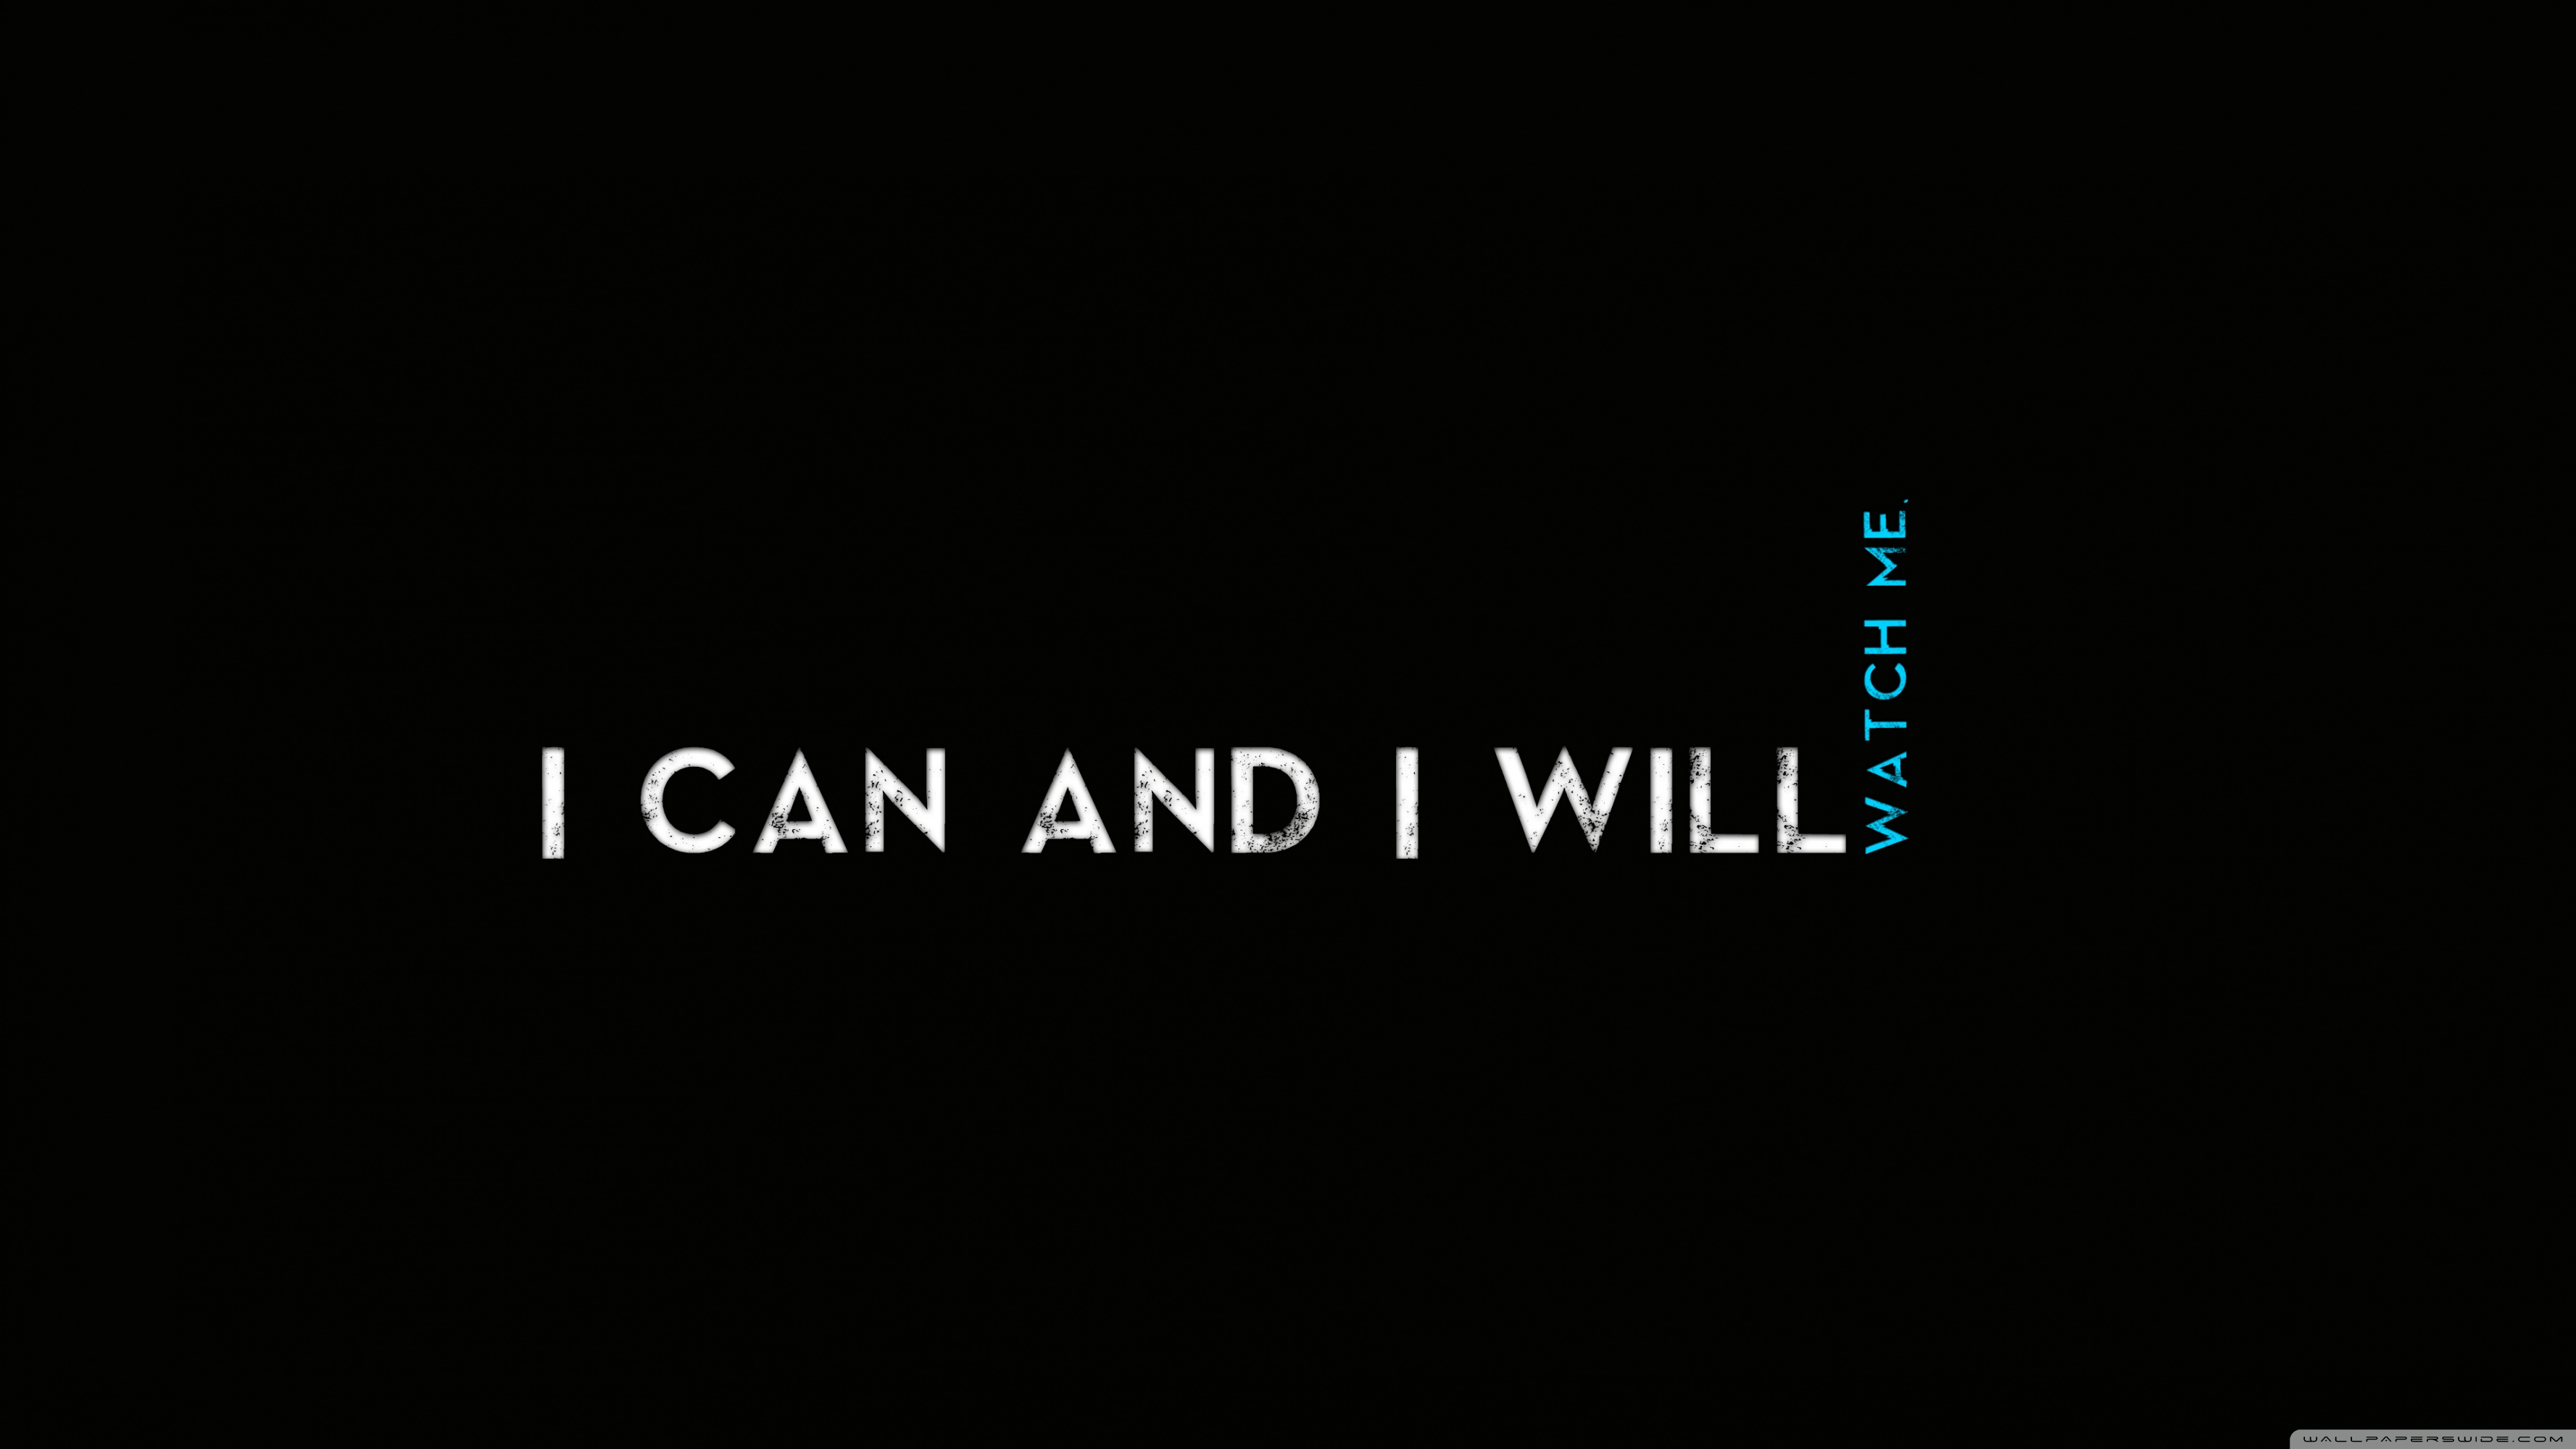 Free Download Quotes I Can And I Will 4k Hd Desktop Wallpaper For 4k Ultra Hd 3554x1999 For Your Desktop Mobile Tablet Explore 14 Black Quotes Wallpapers Black Quotes